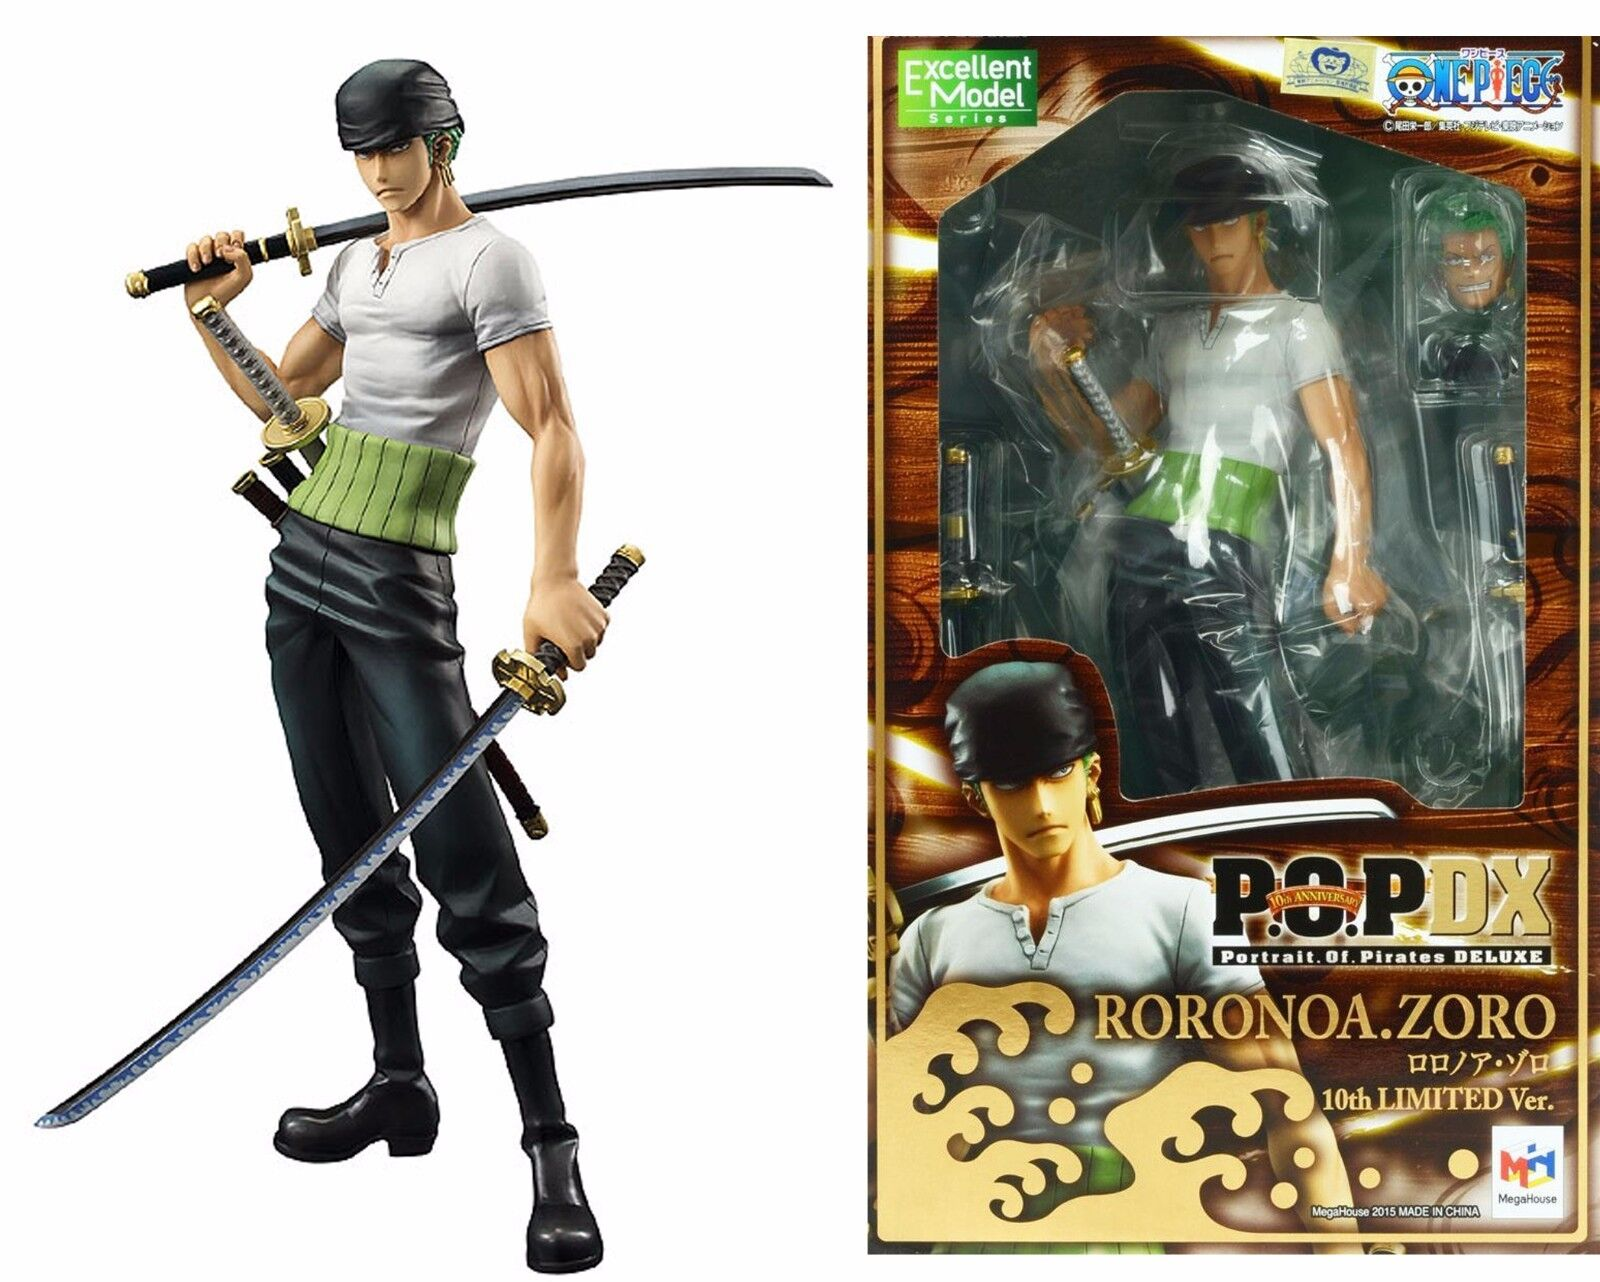 FIGURA ONE PIECE RgoldNOA Zgold 10th LIMITED VERSIÓN POP P.O.p. DX EXCELENTE